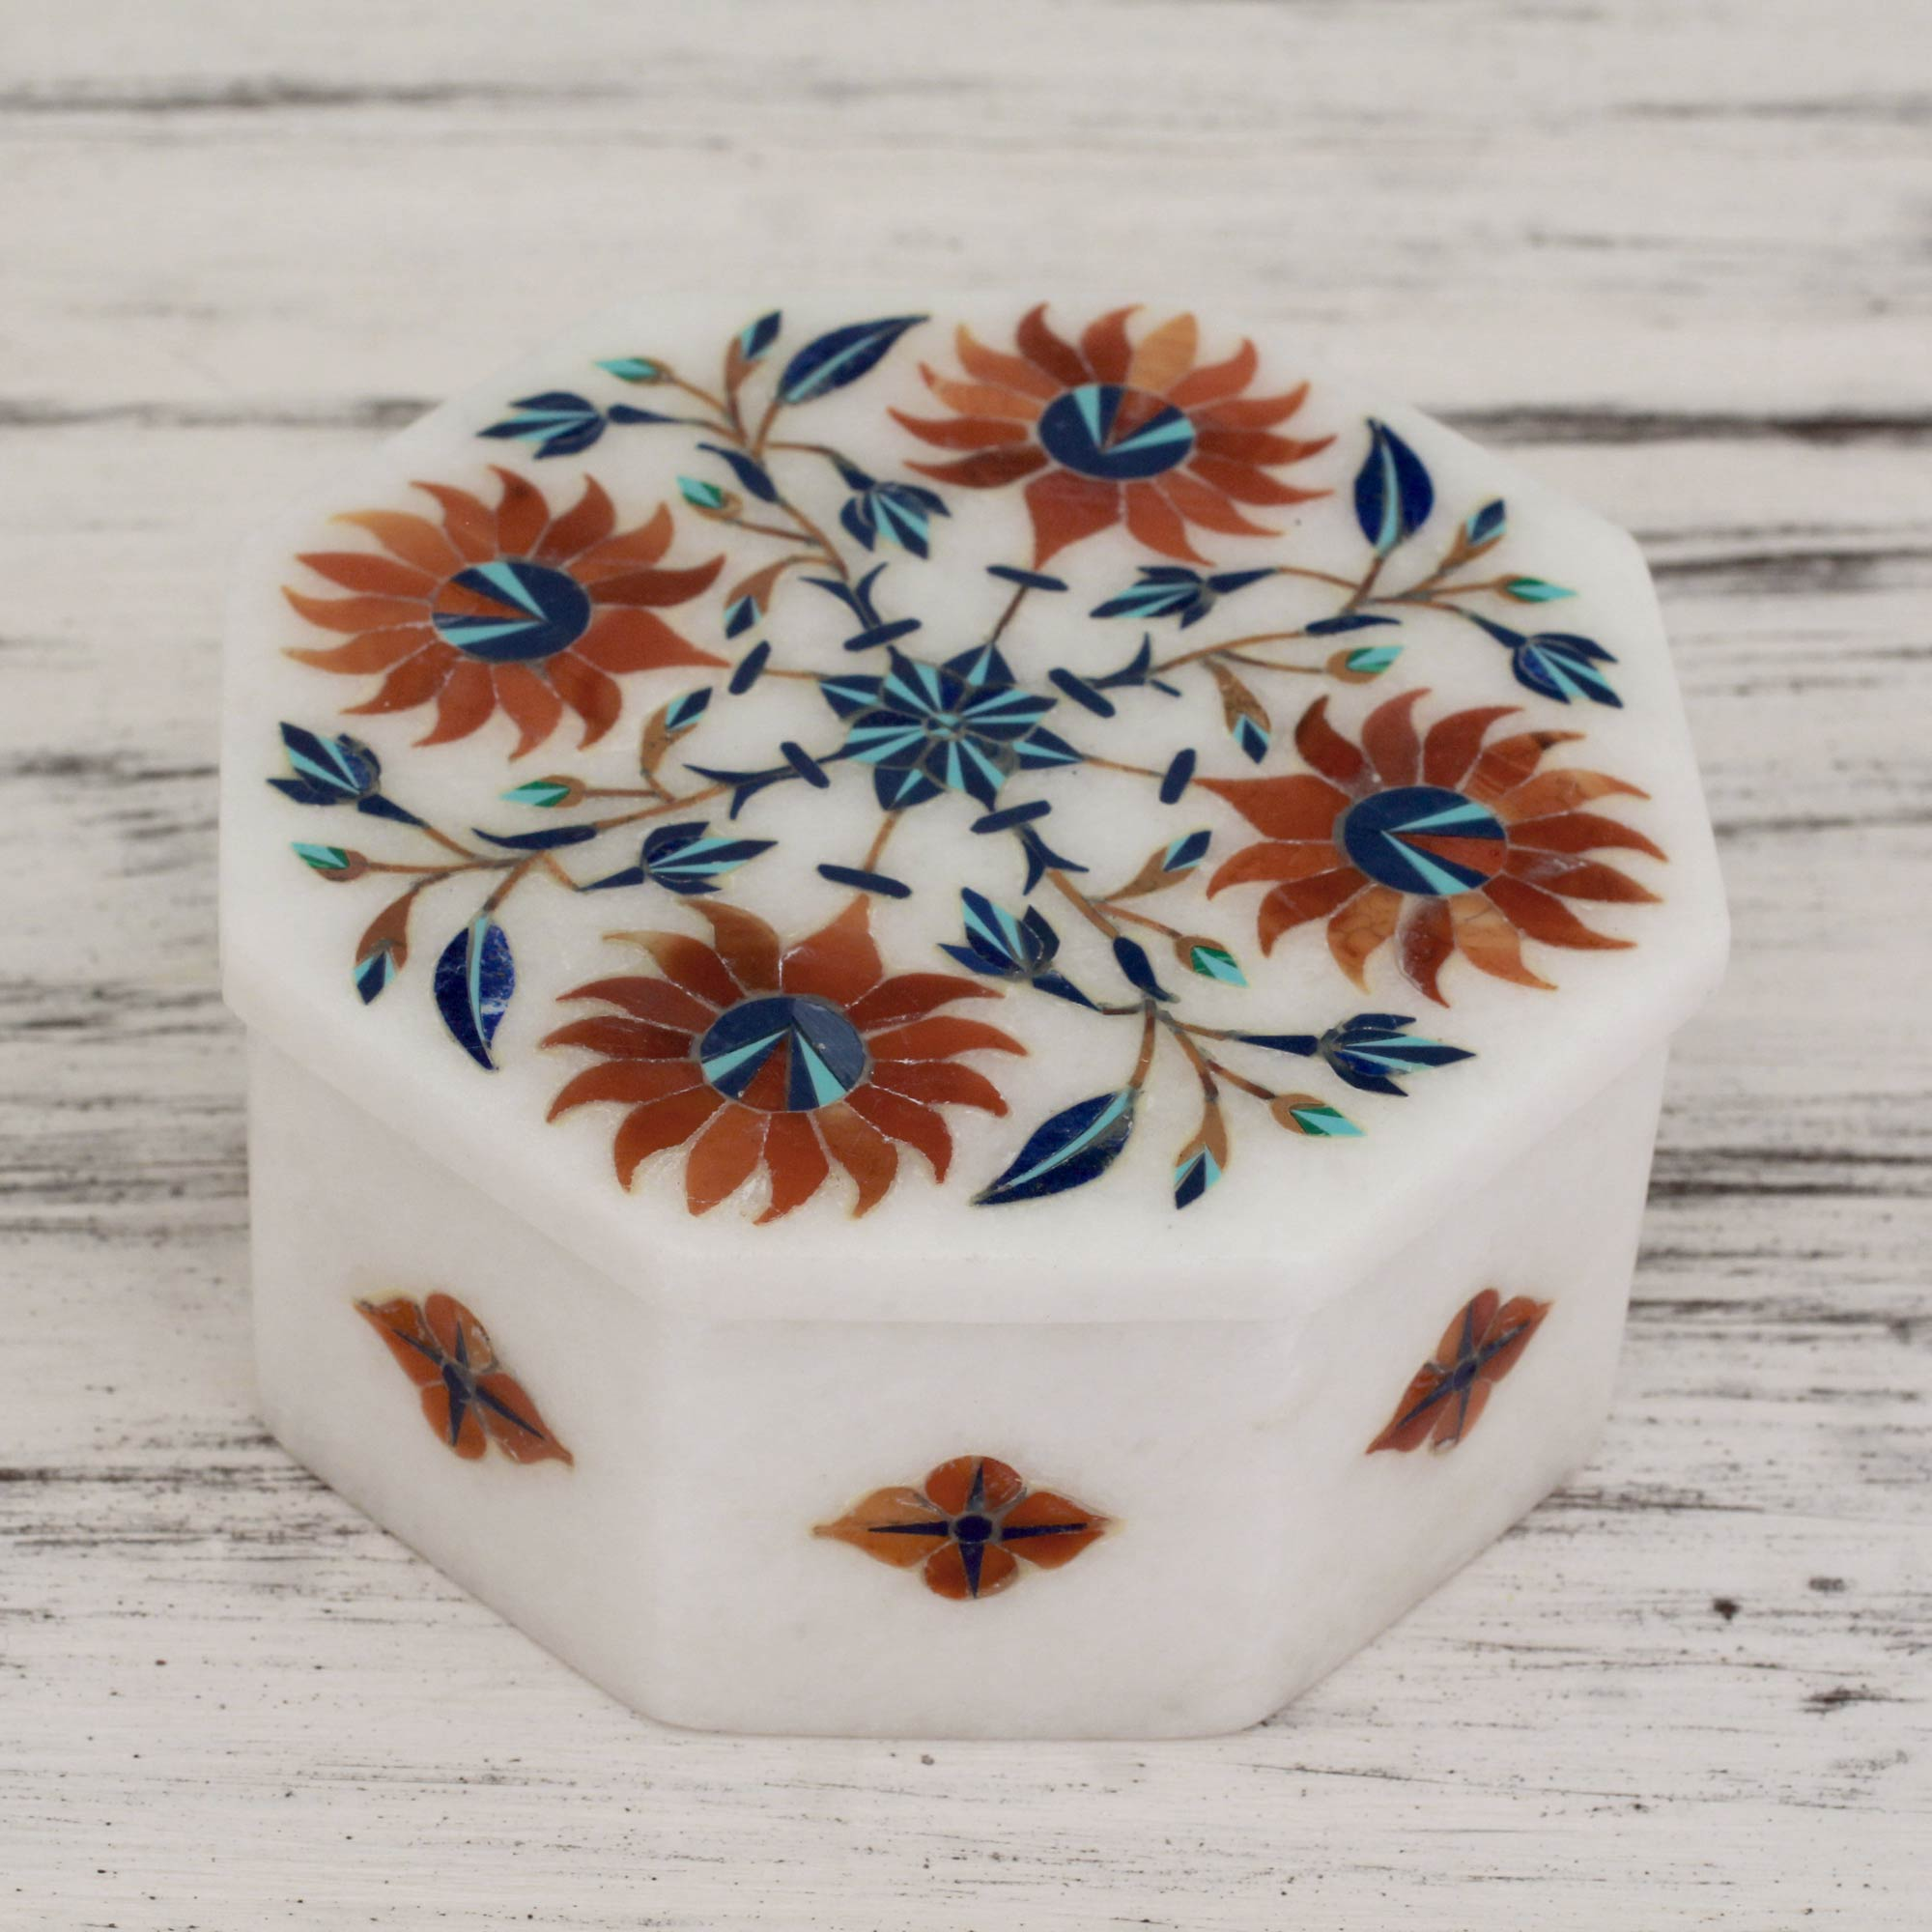 Sunflower Compass Floral Marble Jewelry Box from India Elegant home